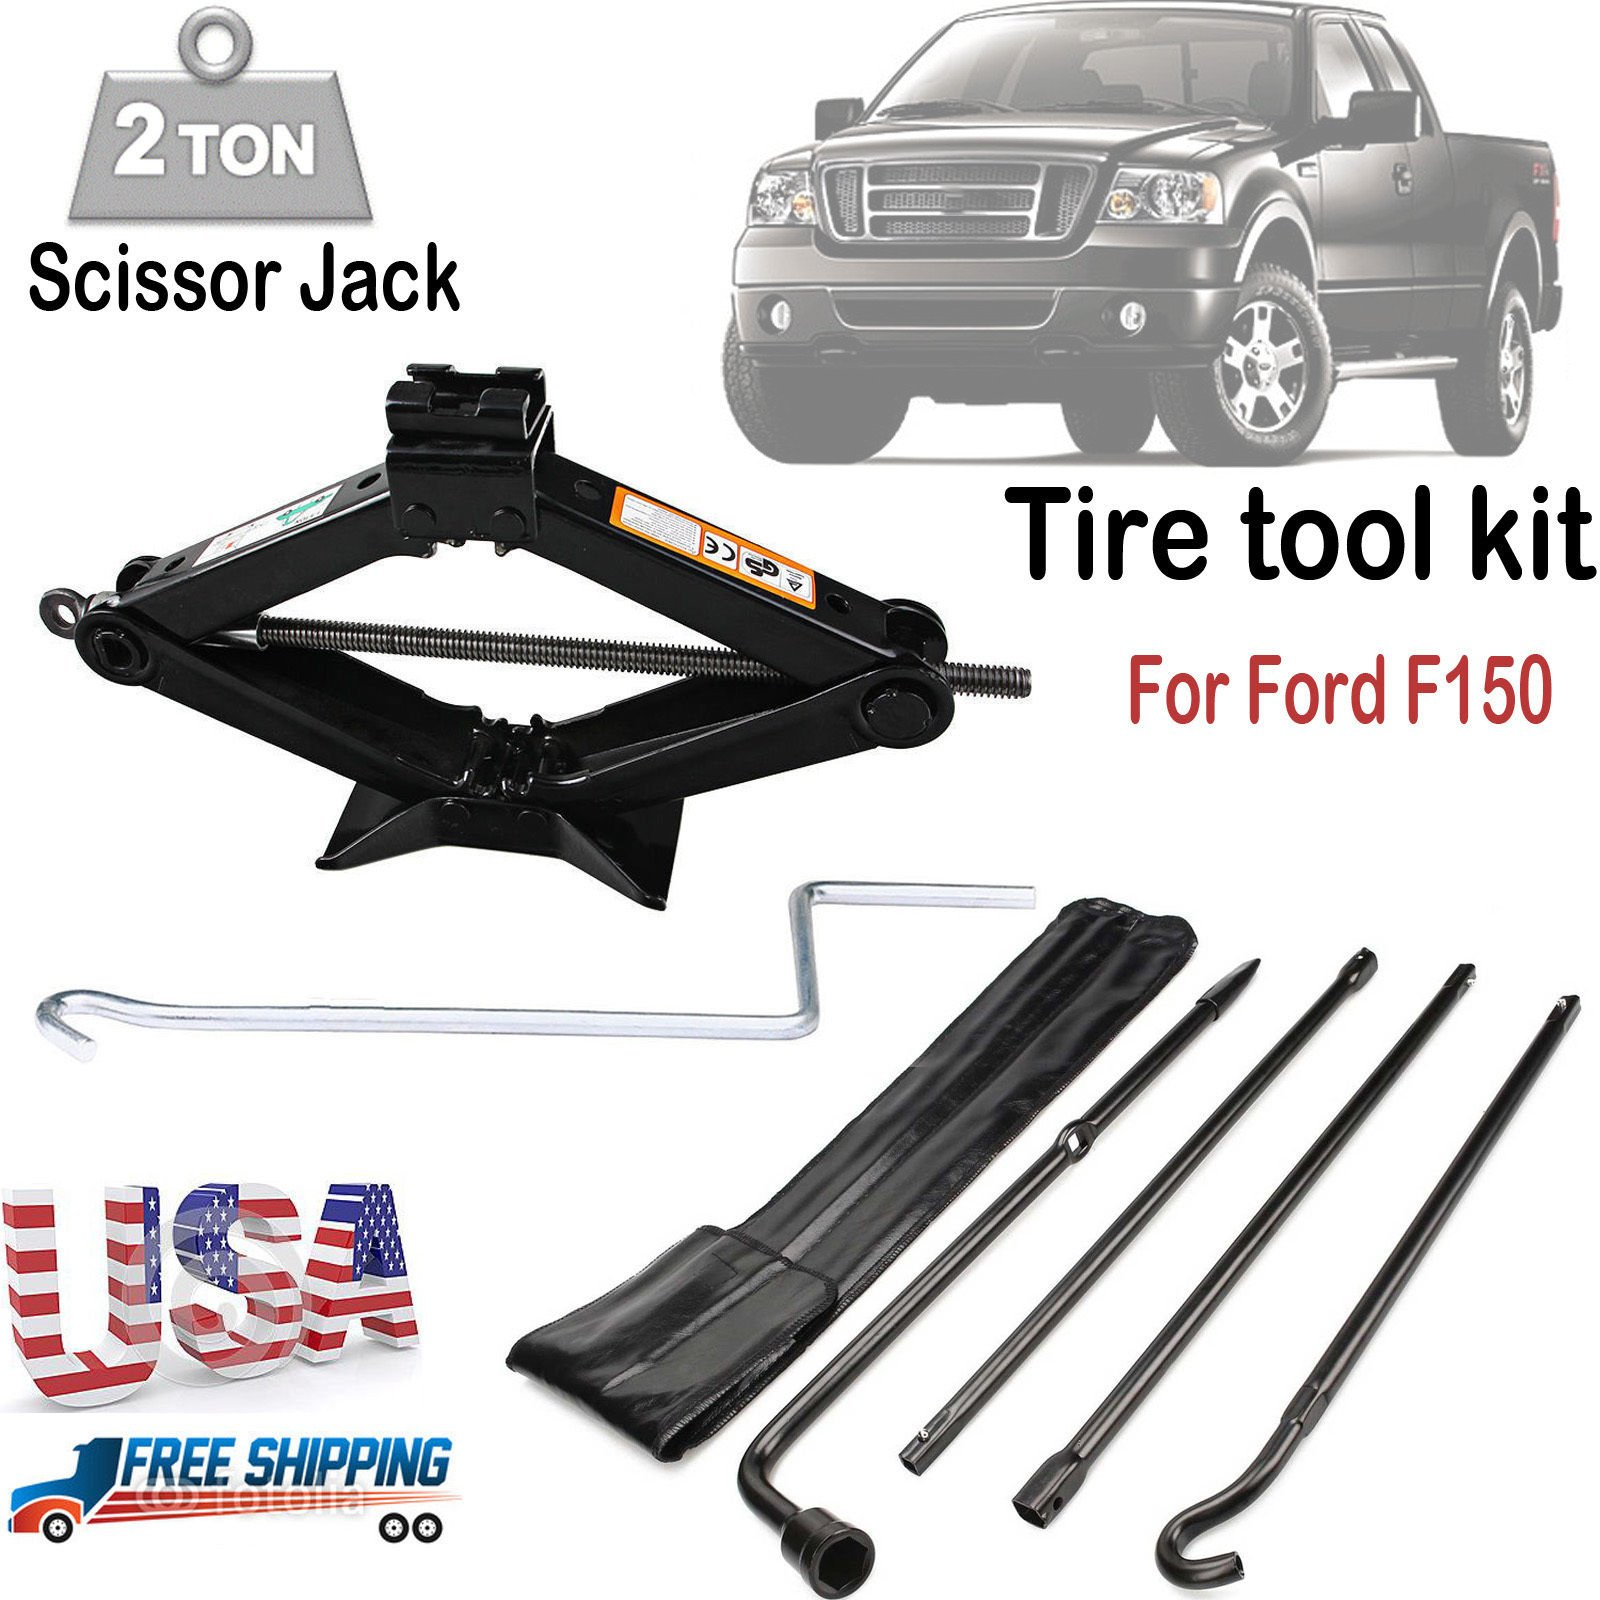 Spare Tire Tool Kit and 2 Ton Scissor Jack For Ford F150 2004 to 2014 OEM Exension Nut Lug Wheel Wrench Repair Replacement Iron Set